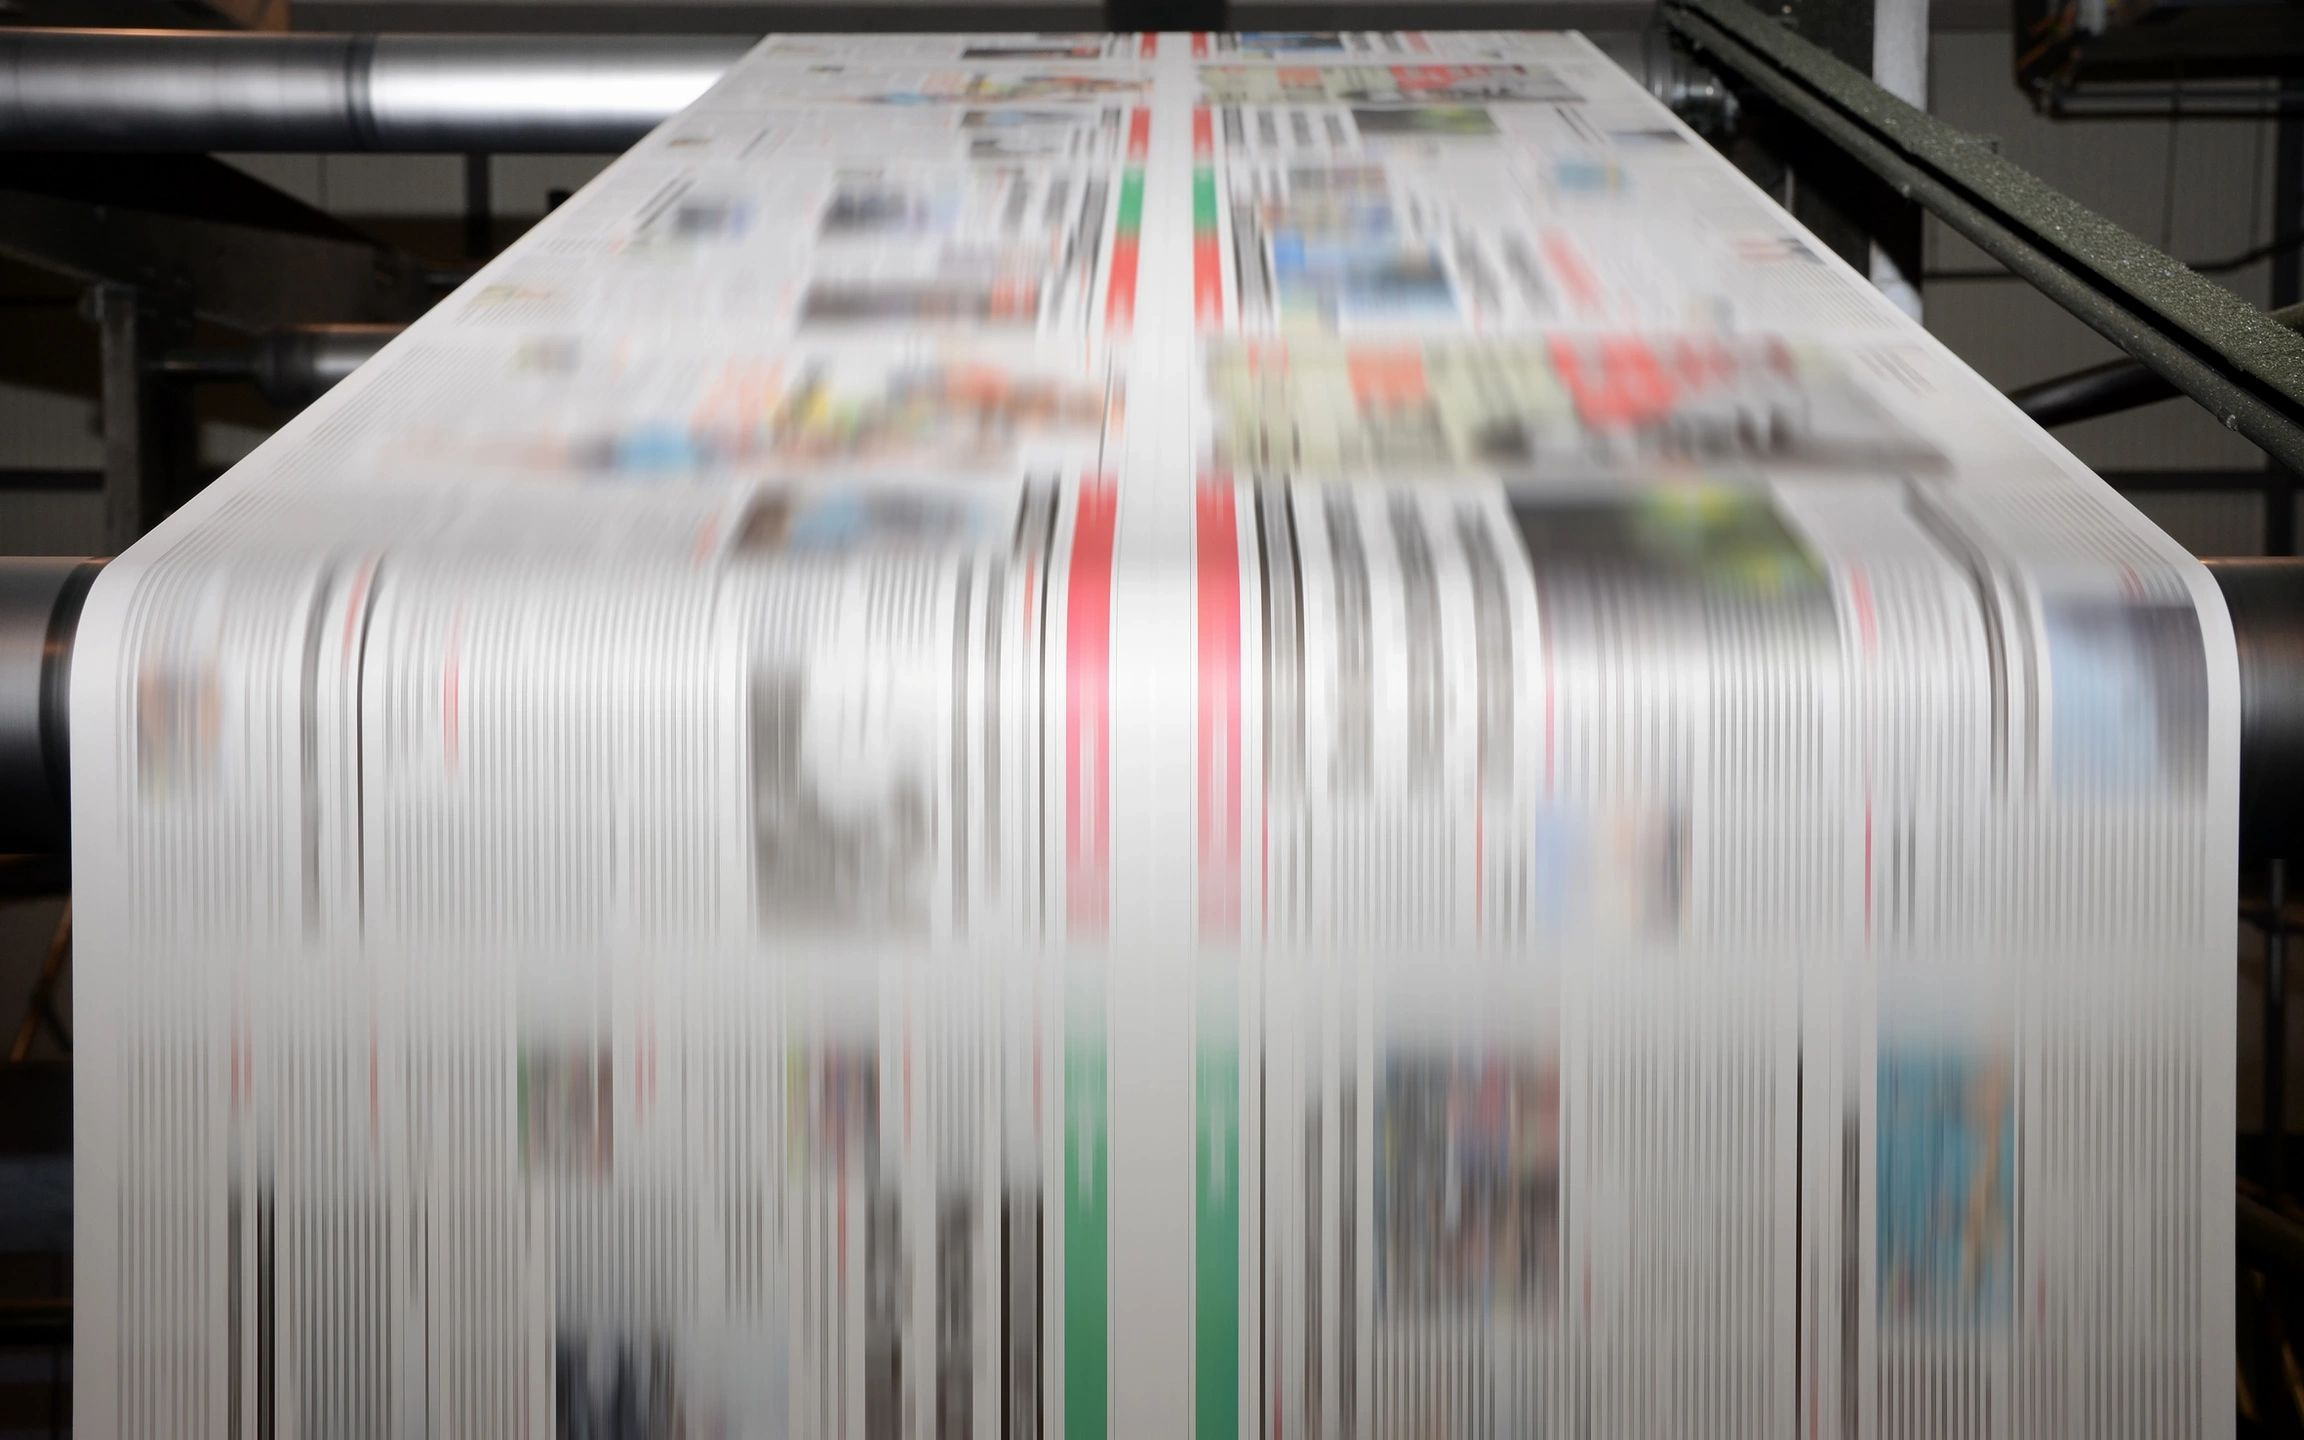 5 ways to stop the News becoming overwhelming.